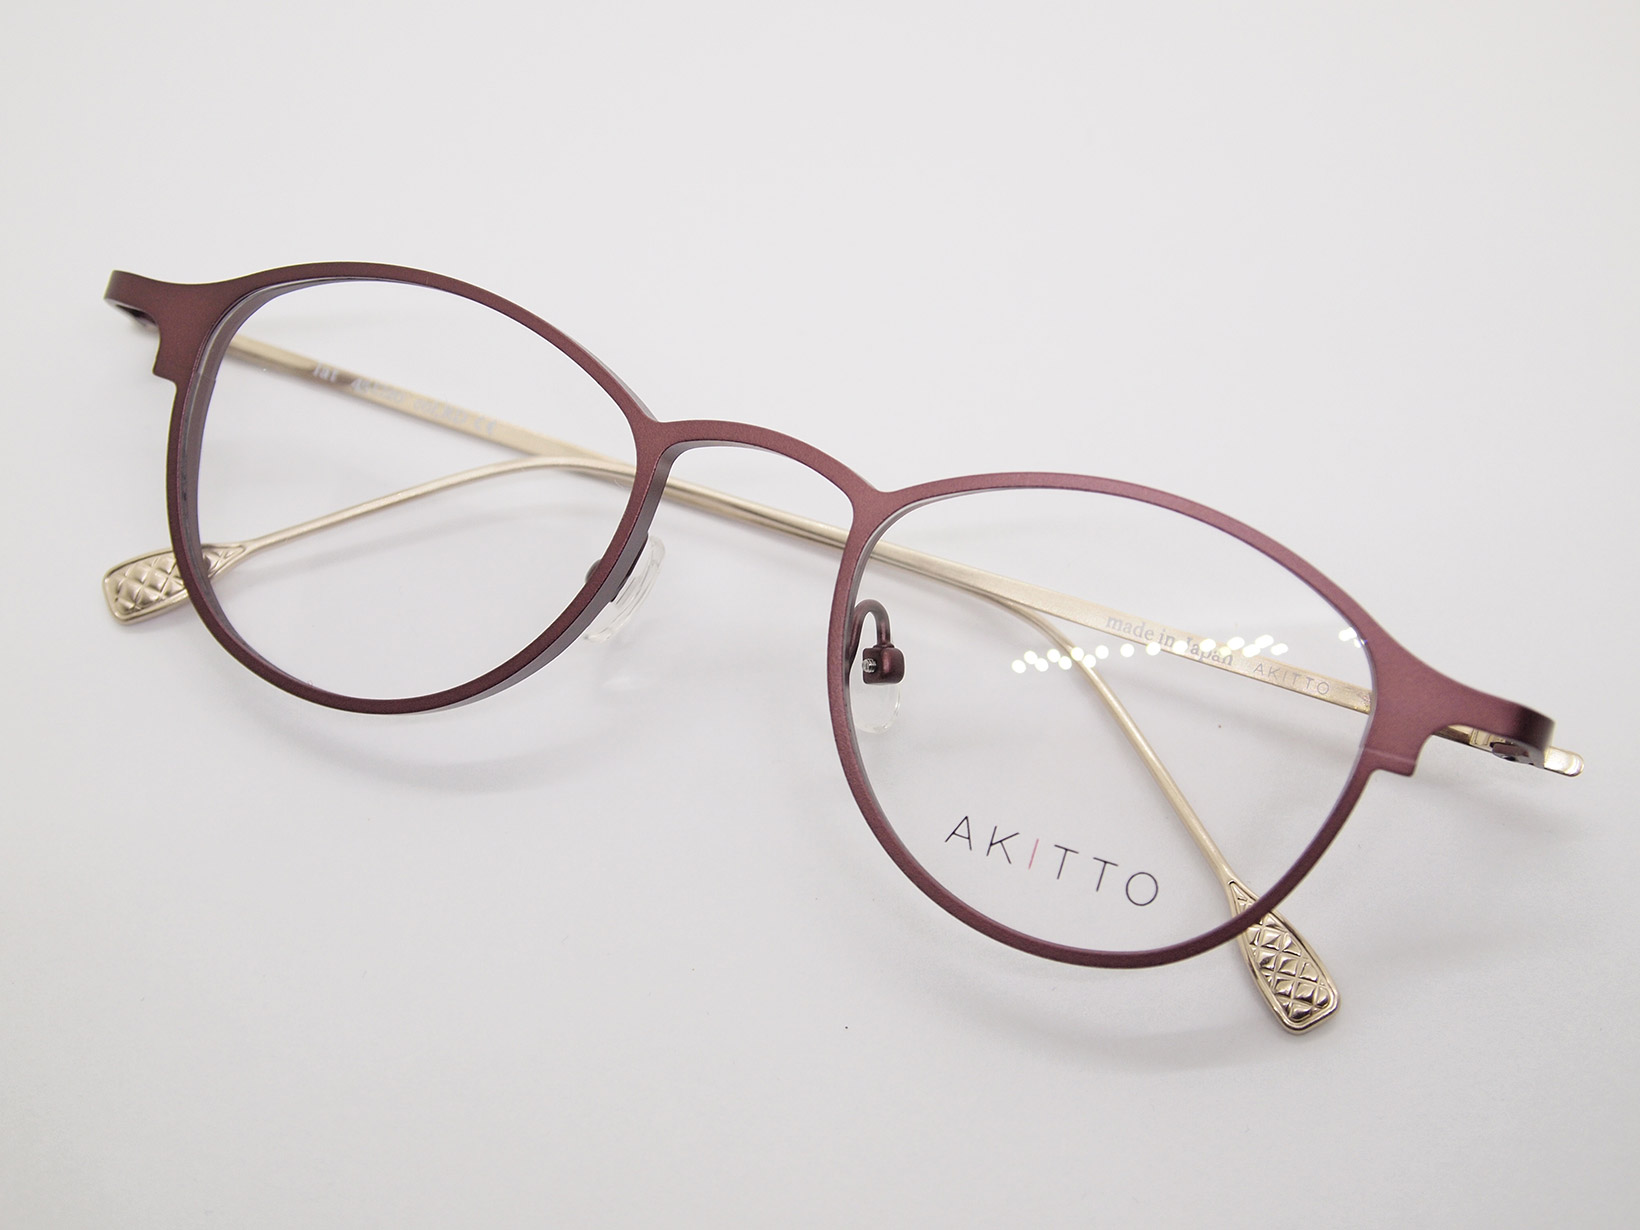 AKITTO 2021-4th lat color|RD size:45□20 material:titanium price:¥46,200-(税込み)